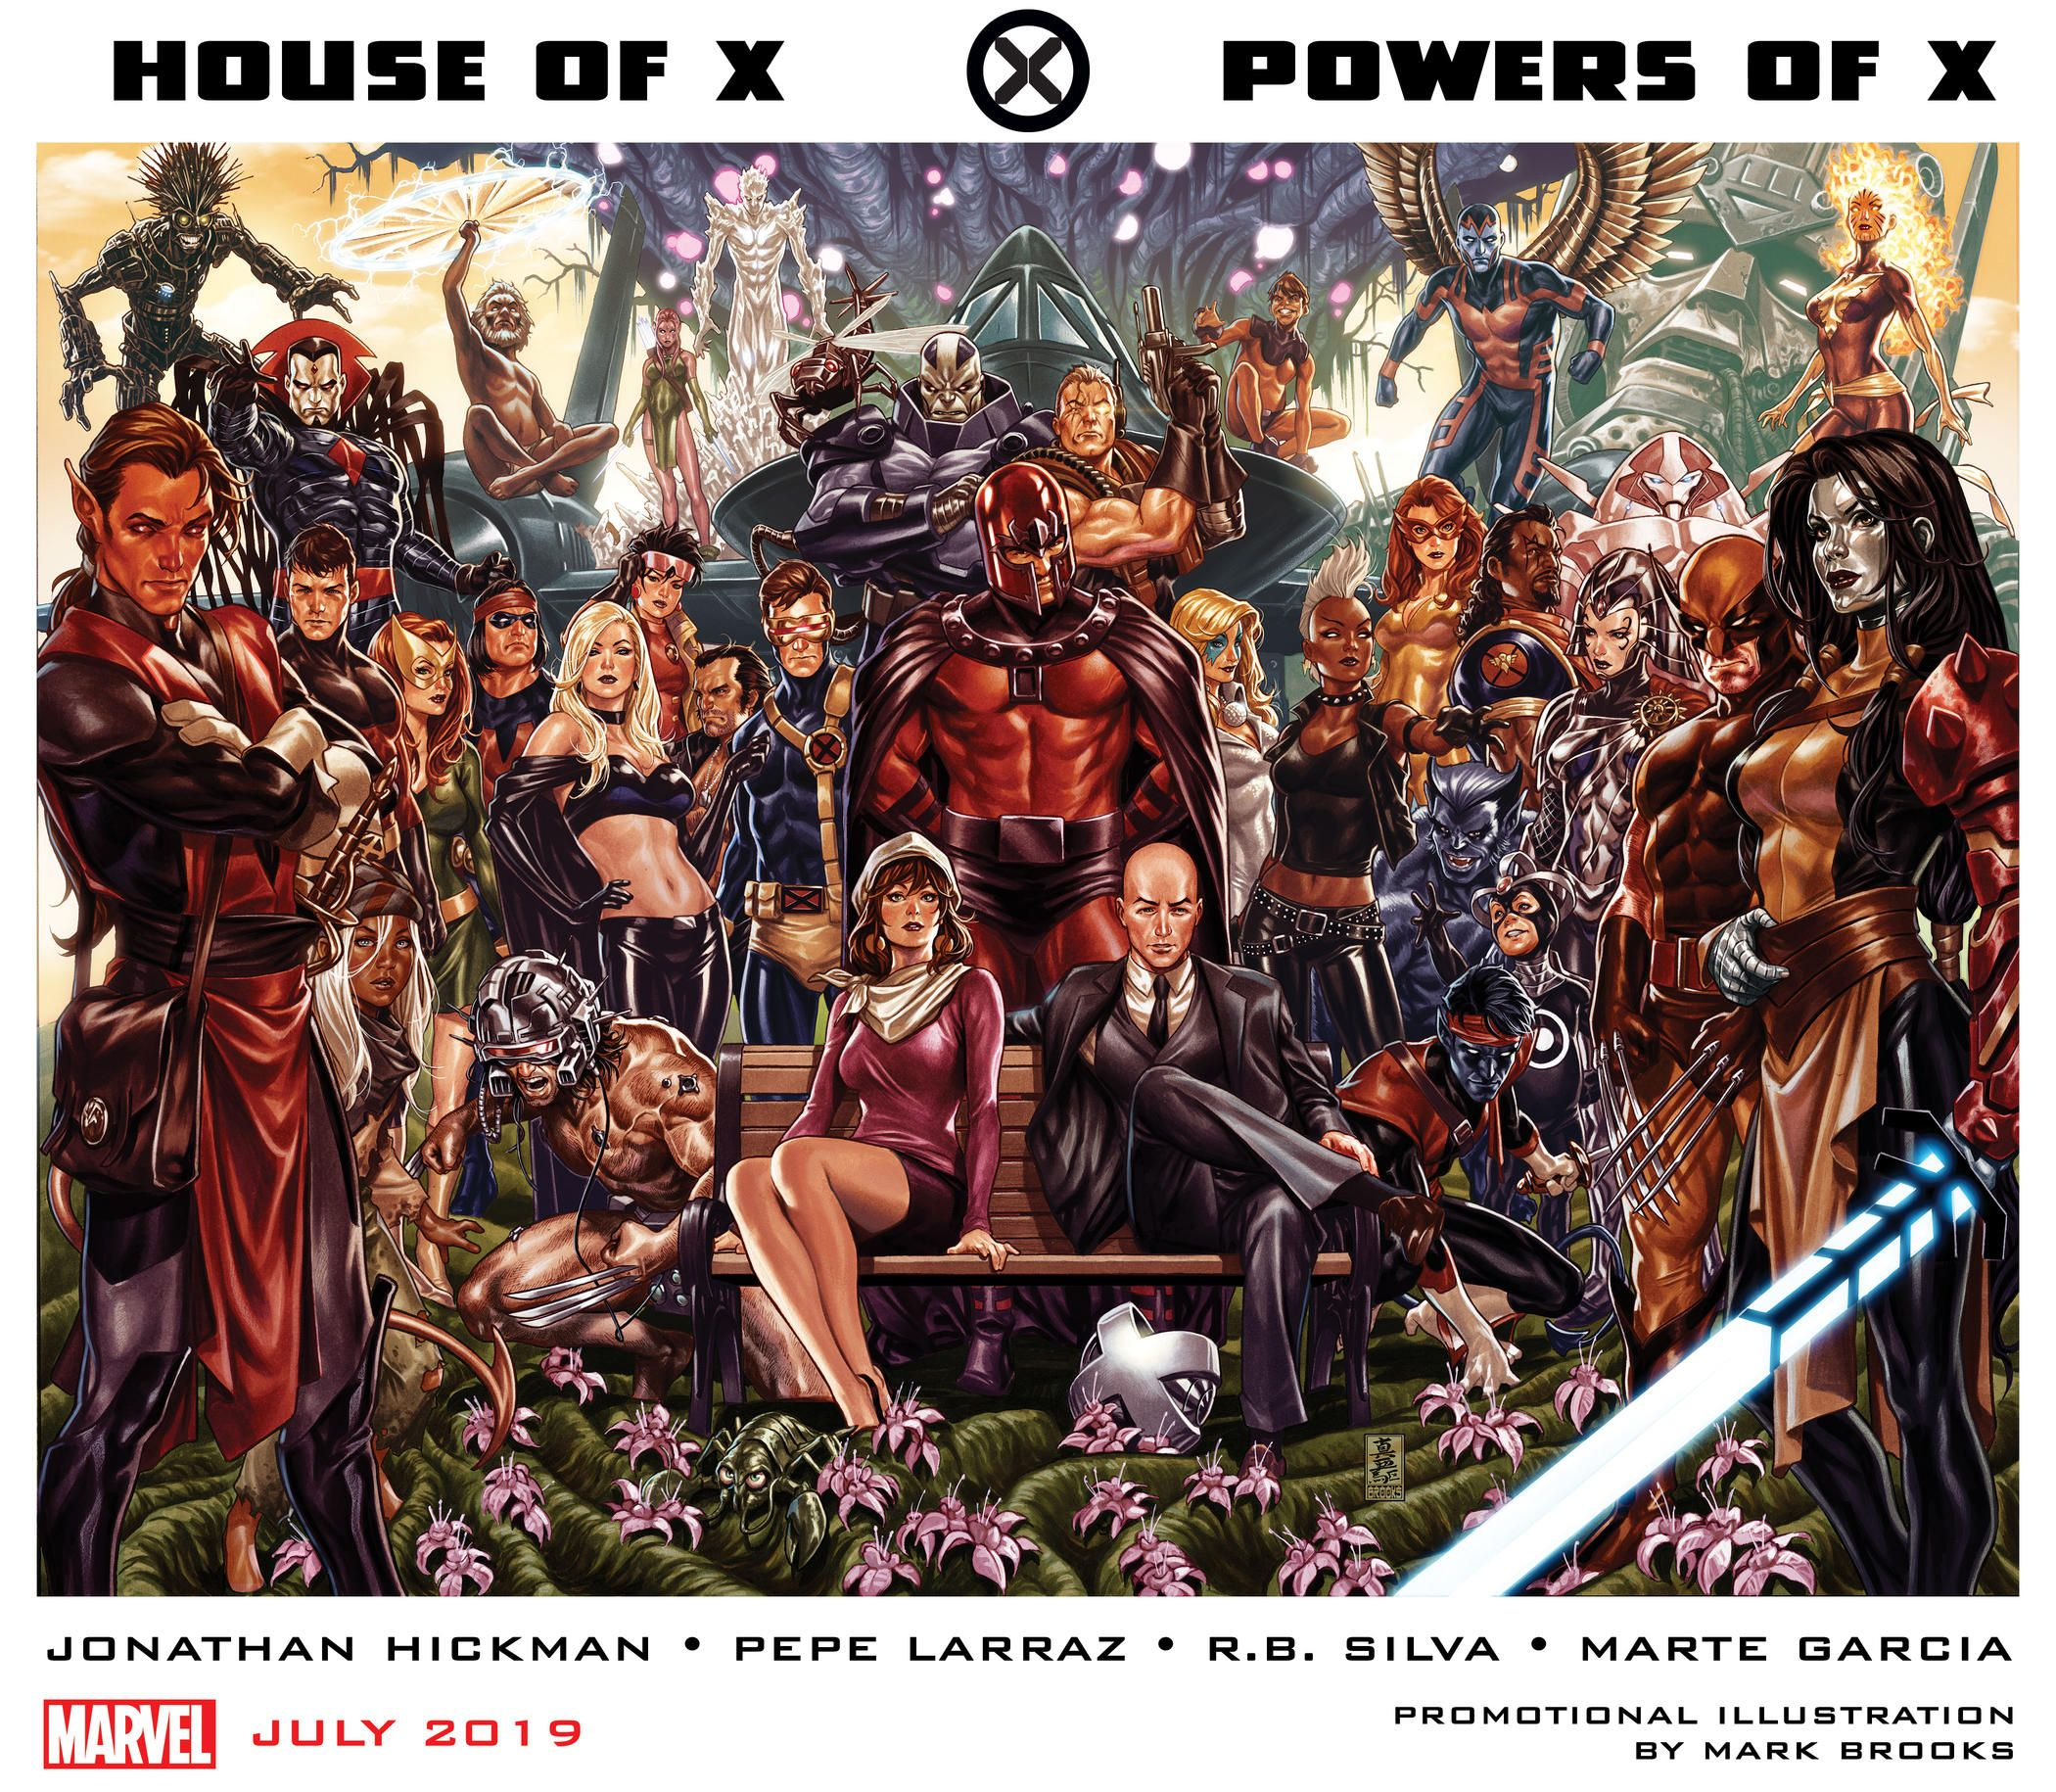 Marvel Comics Announces Historic X Men Milestone With House Of X And Powers Of X Marvel Marvel Entertainment X Men